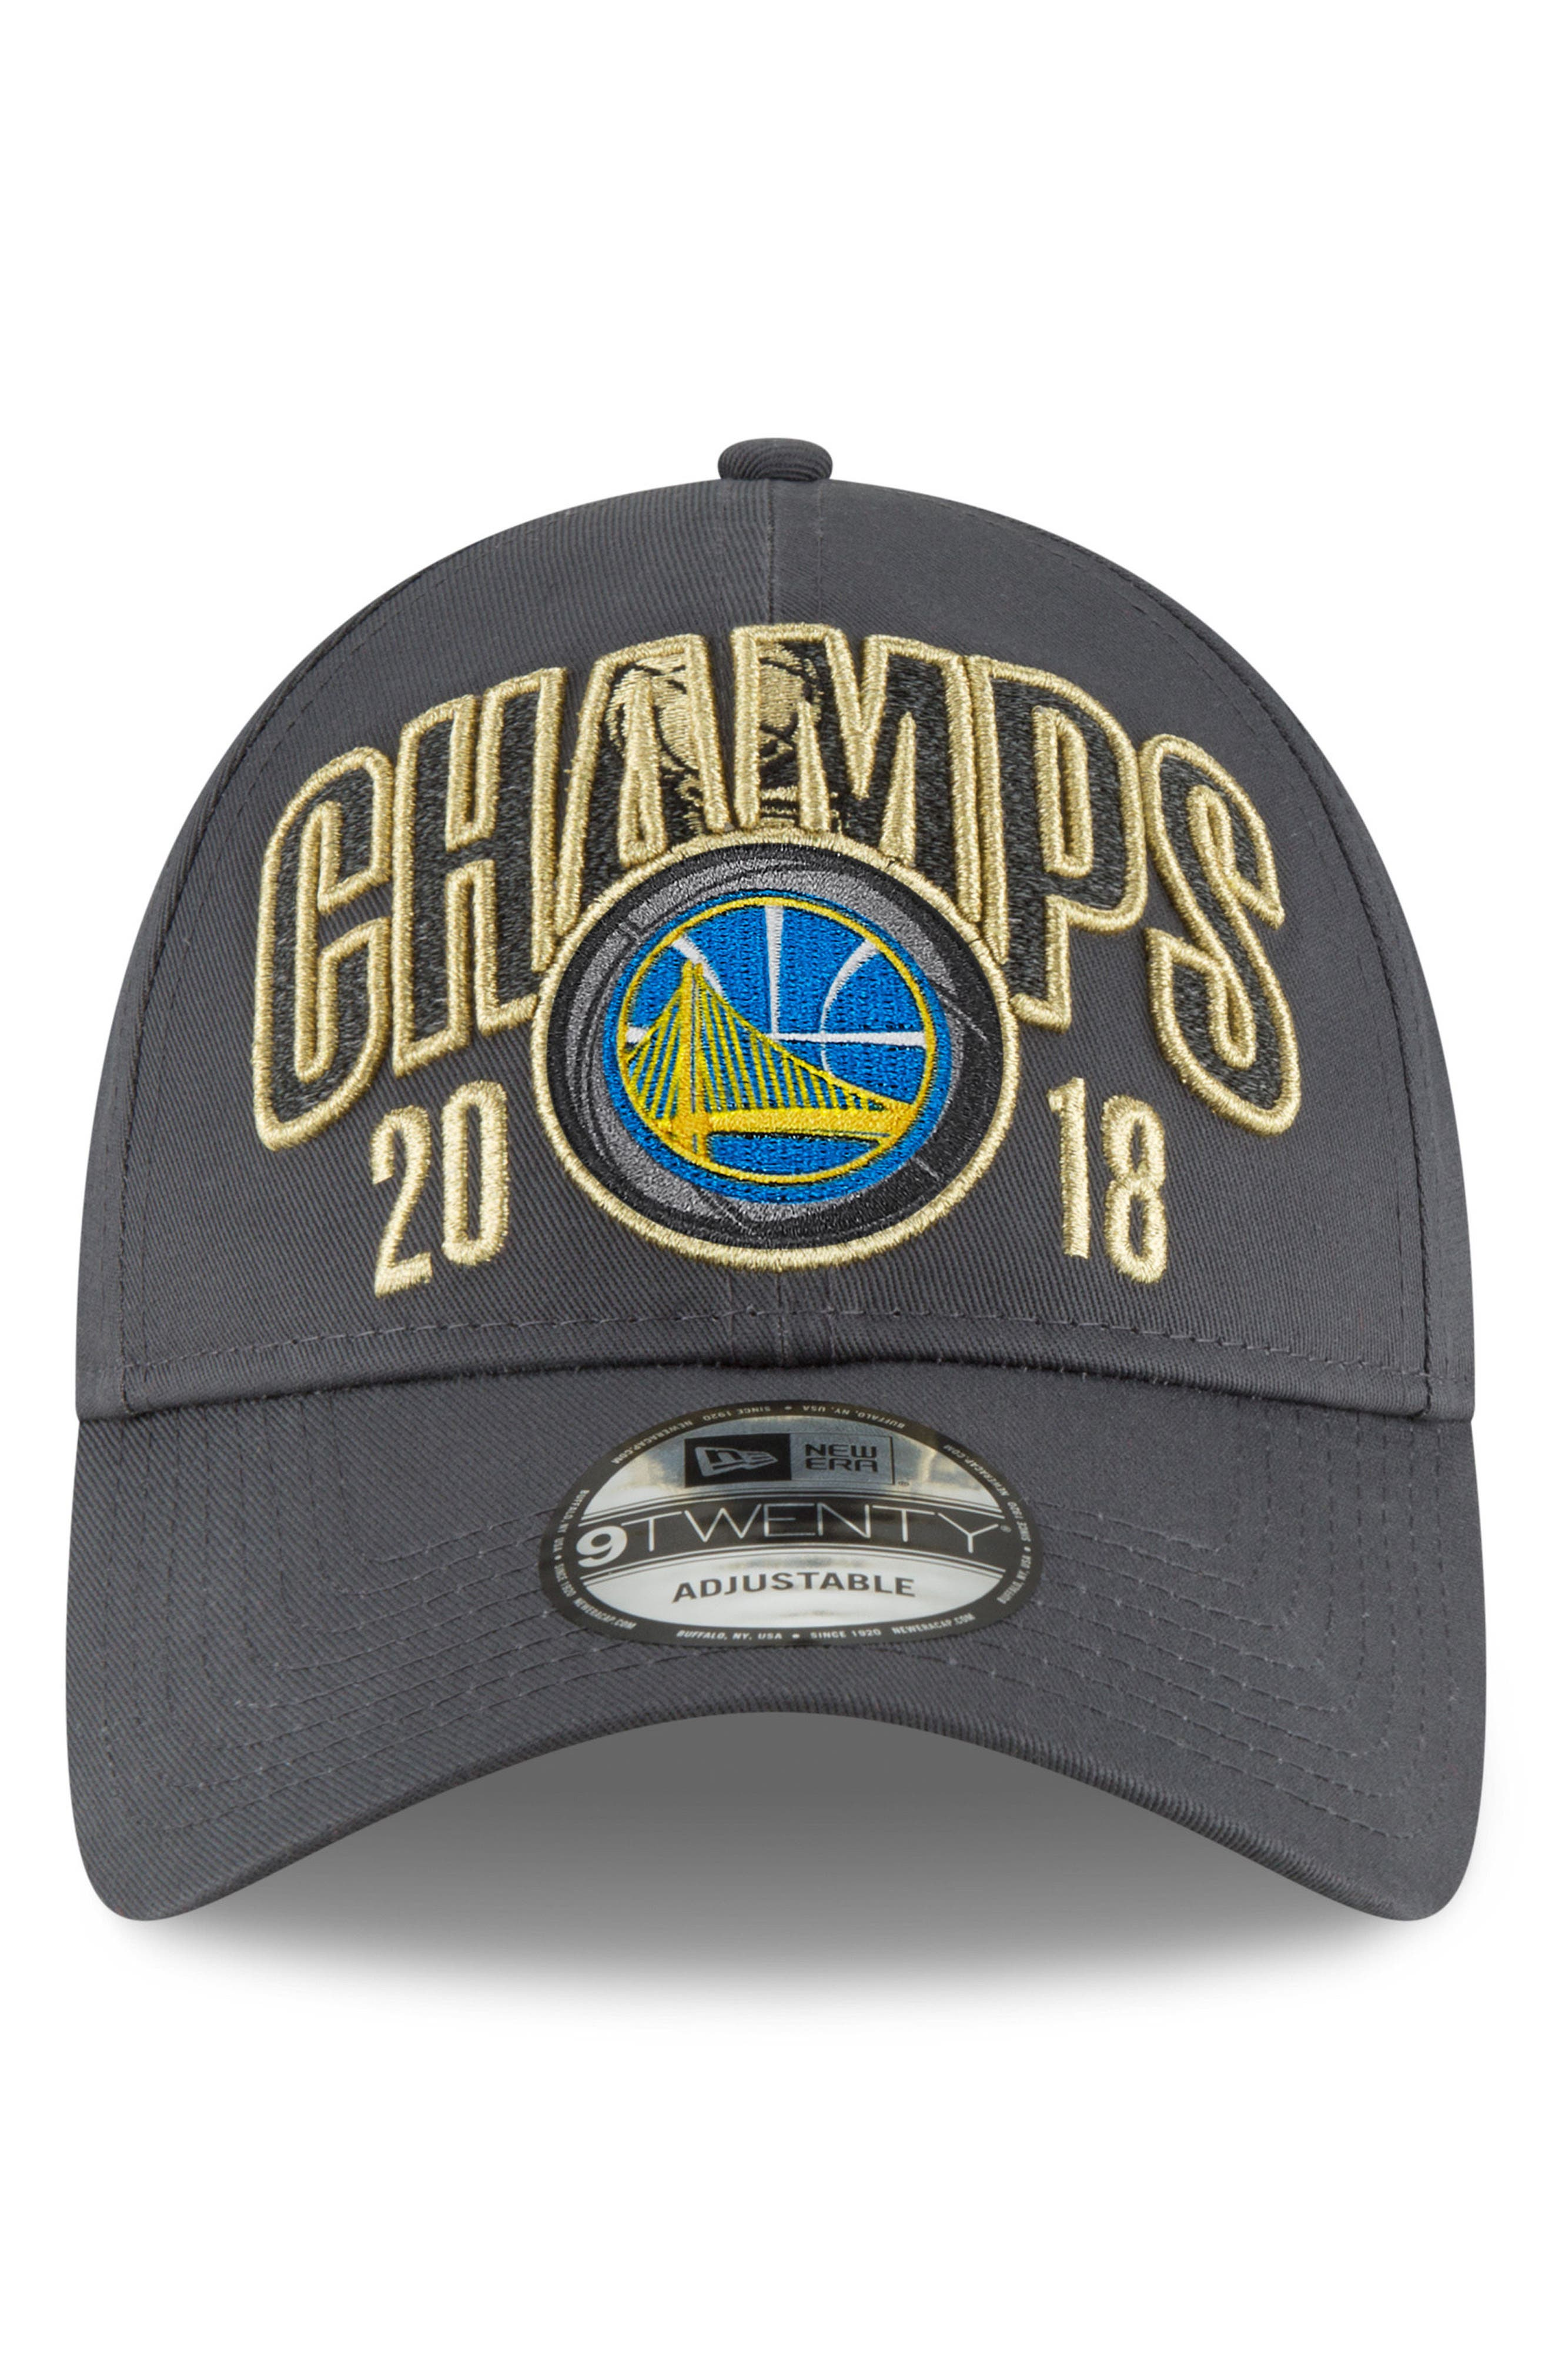 2018 NBA Champions - Golden State Warriors 9Twenty Baseball Cap,                             Alternate thumbnail 4, color,                             Golden State Warriors